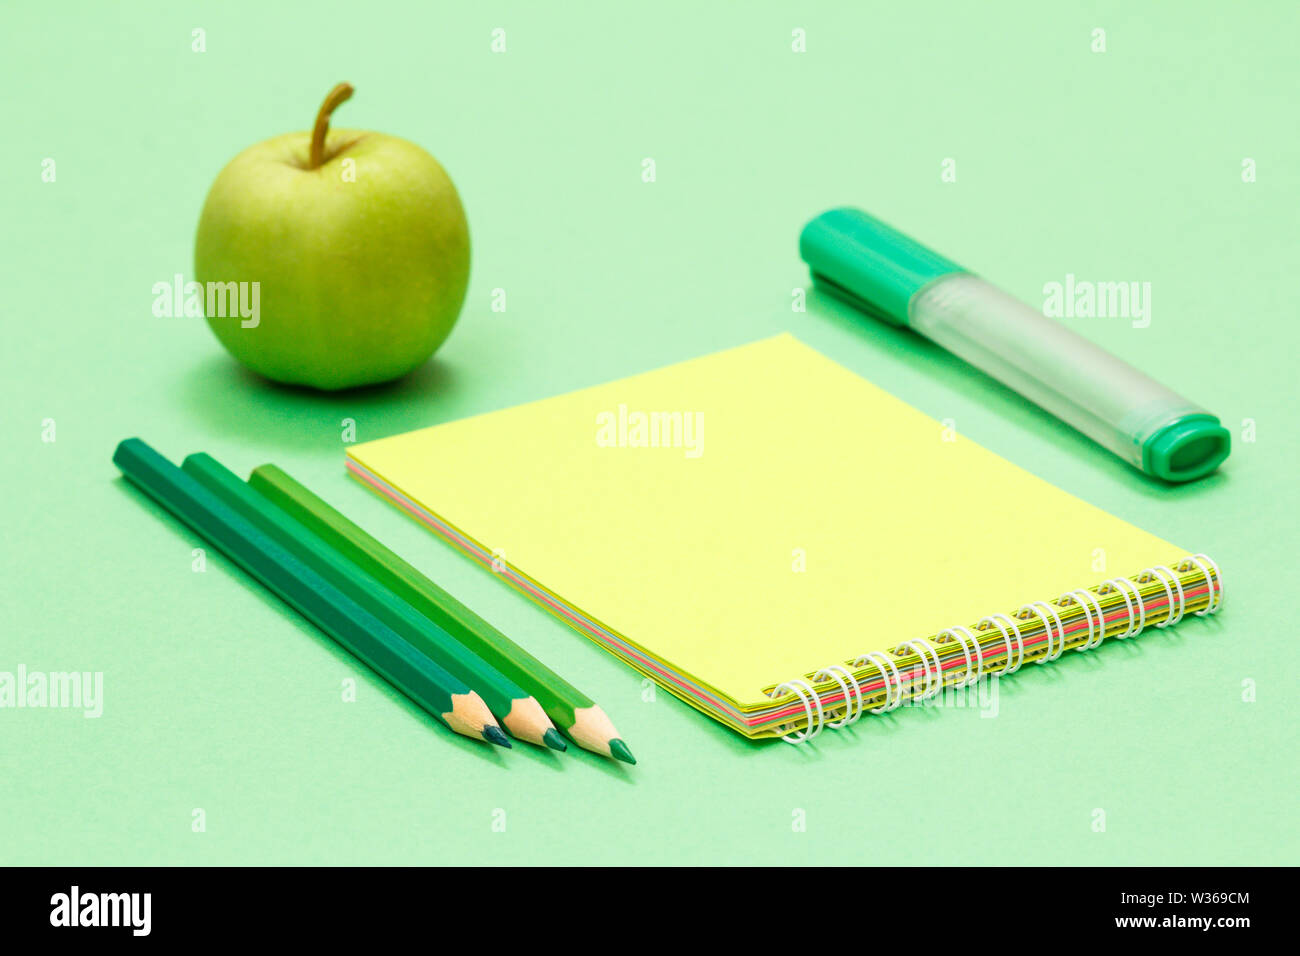 Color pencils, notebook, felt pen and apple on green background. Back to school concept. School supplies. Shallow depth of field. - Stock Image